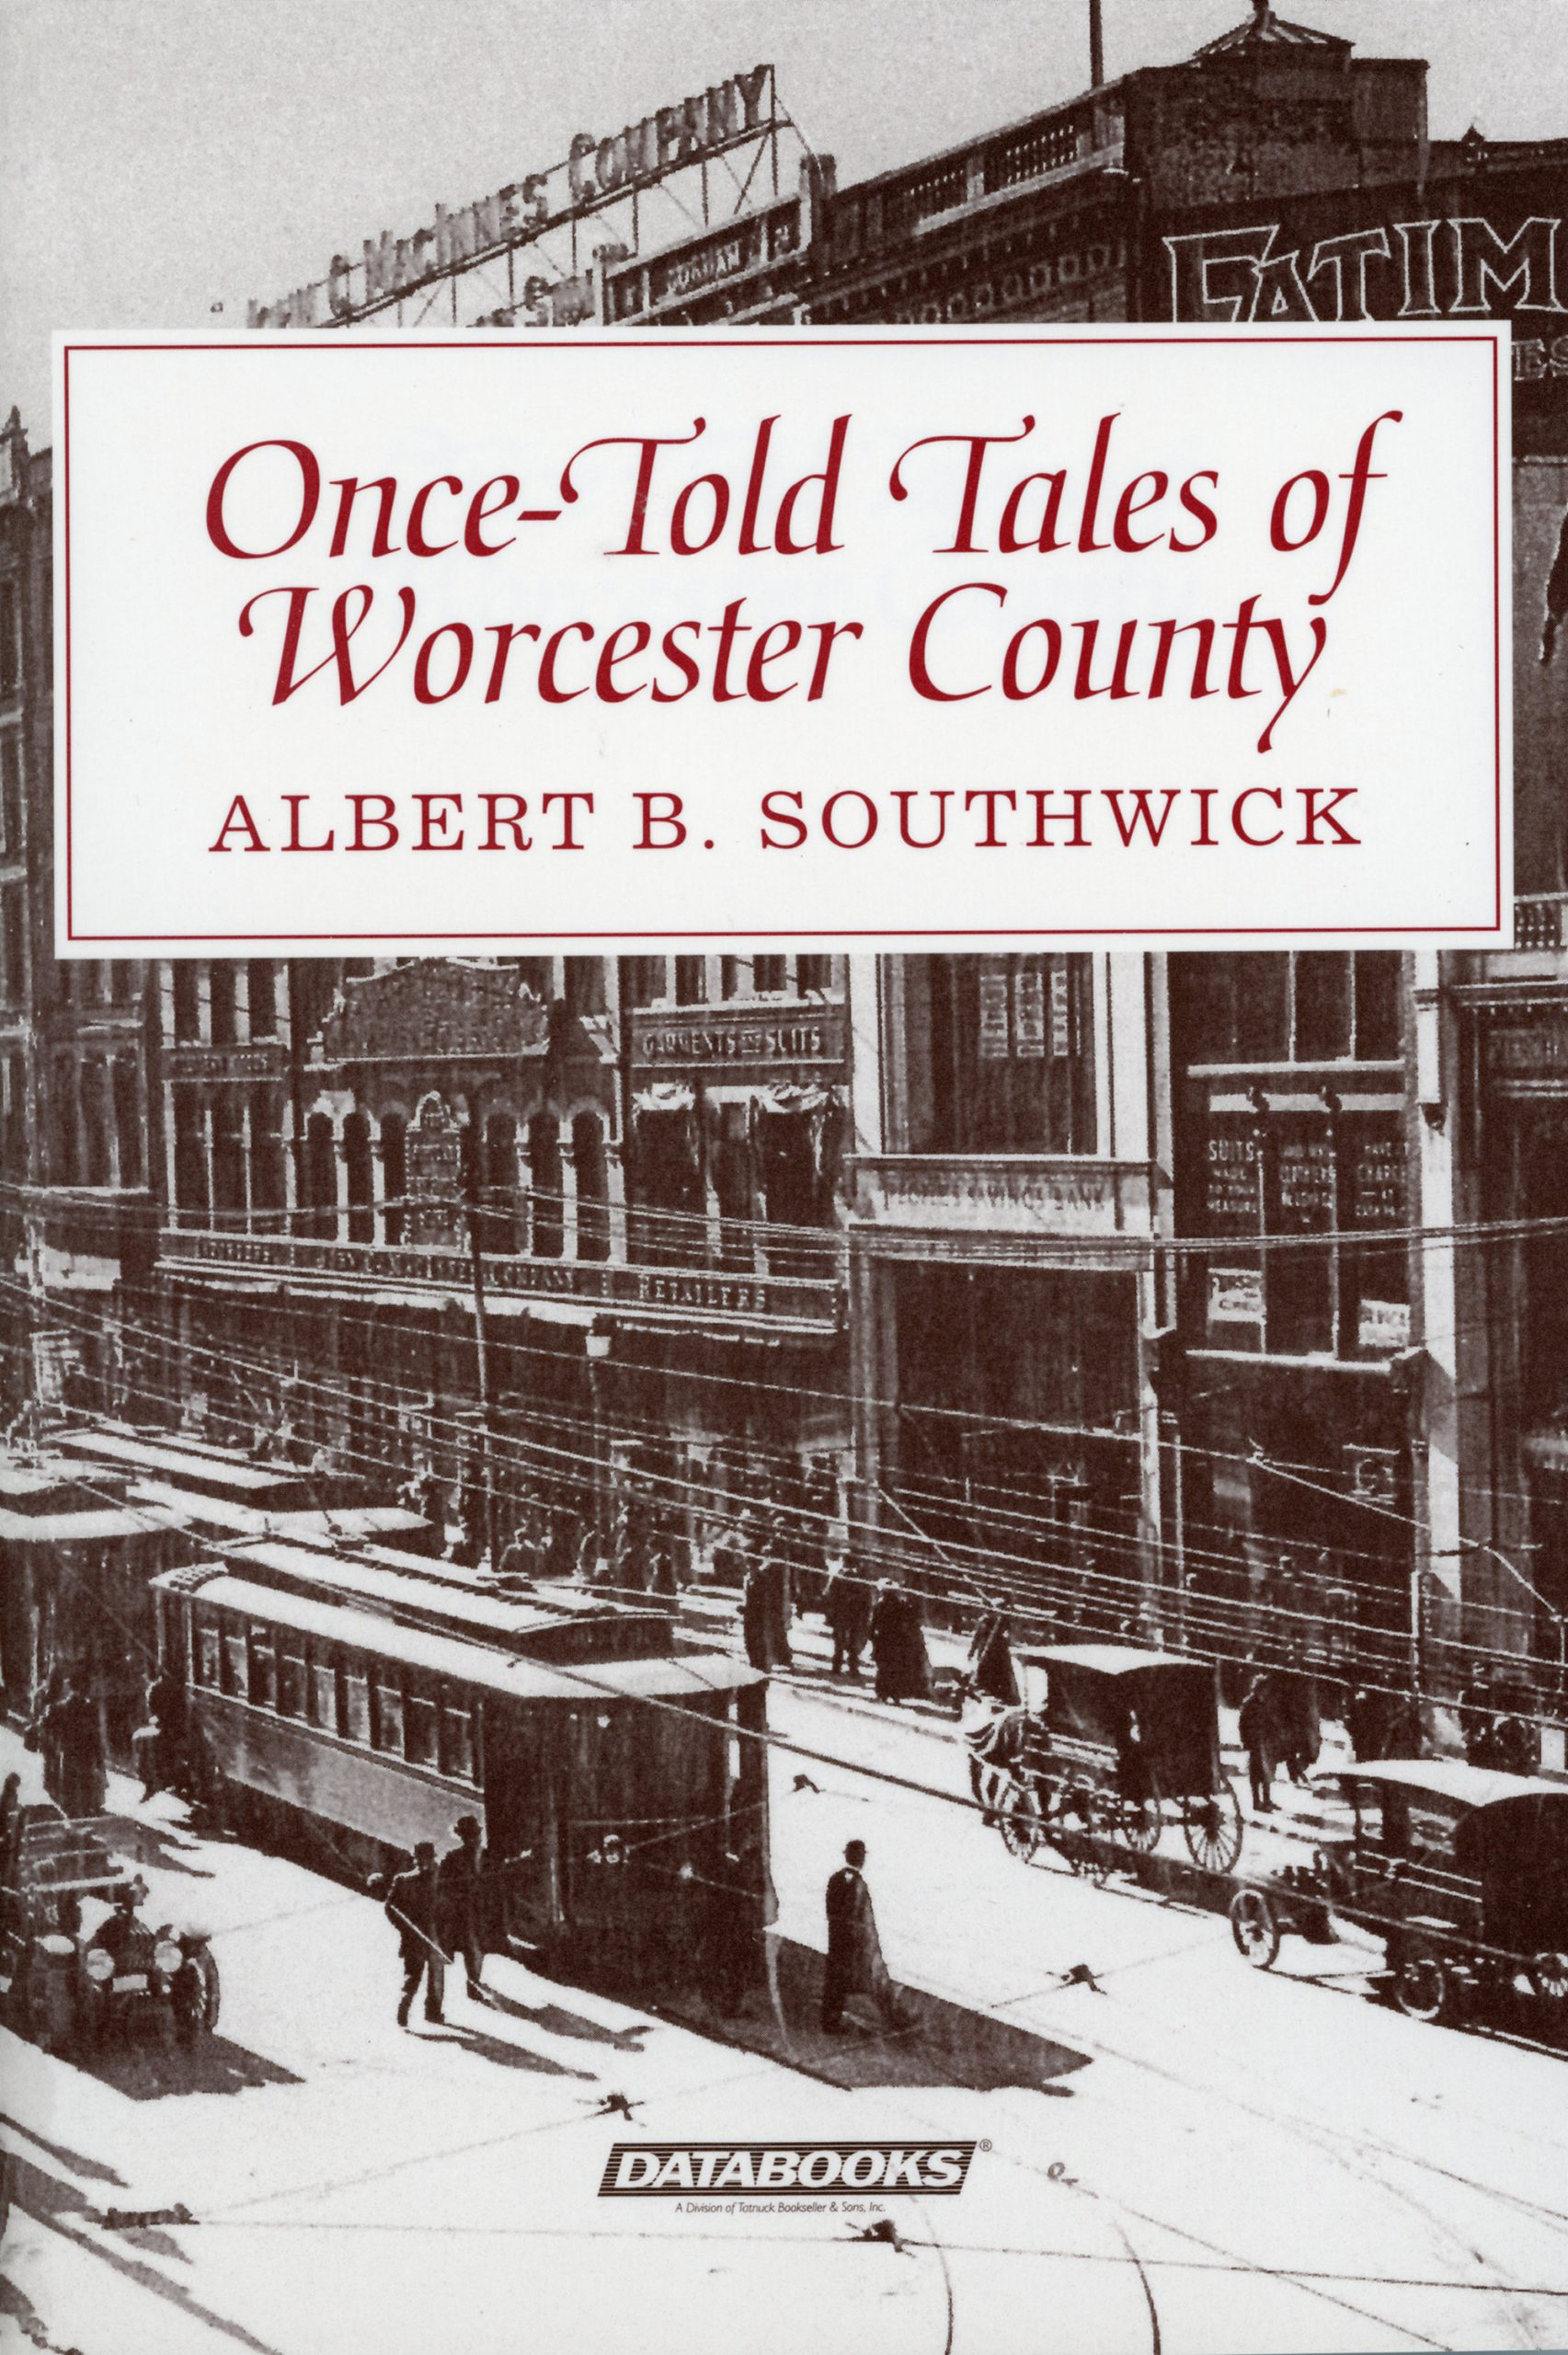 Once Told Tales of Worcester County by Albert B. Southwick